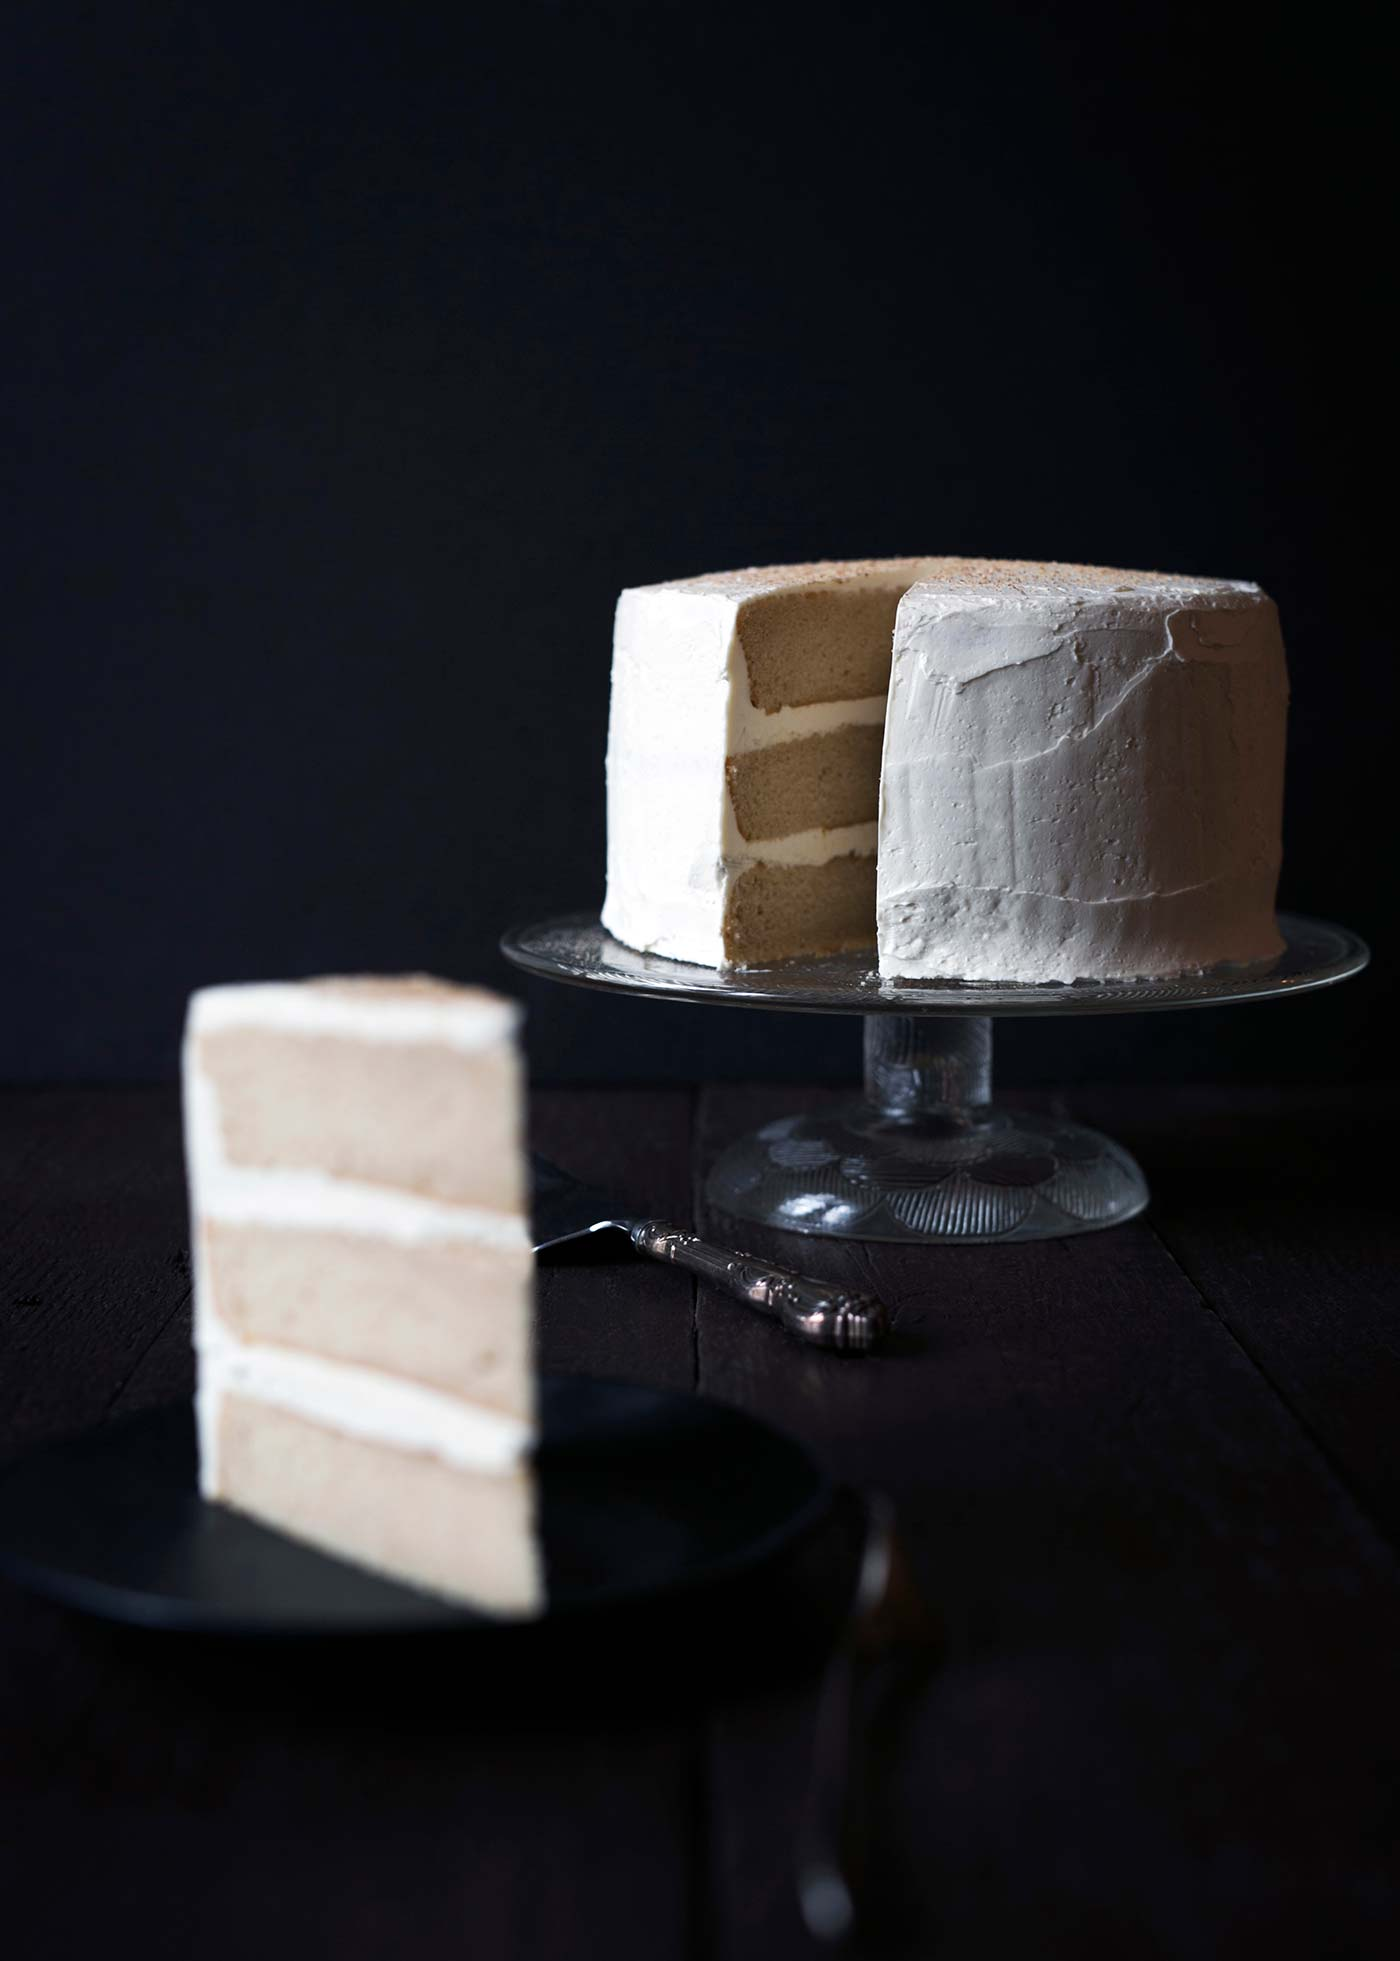 Impress your guests with this gorgeous and impressive Eggnog Rum Layer Cake! It's perfect for holiday parties. Get the recipe from SavorySimple.net